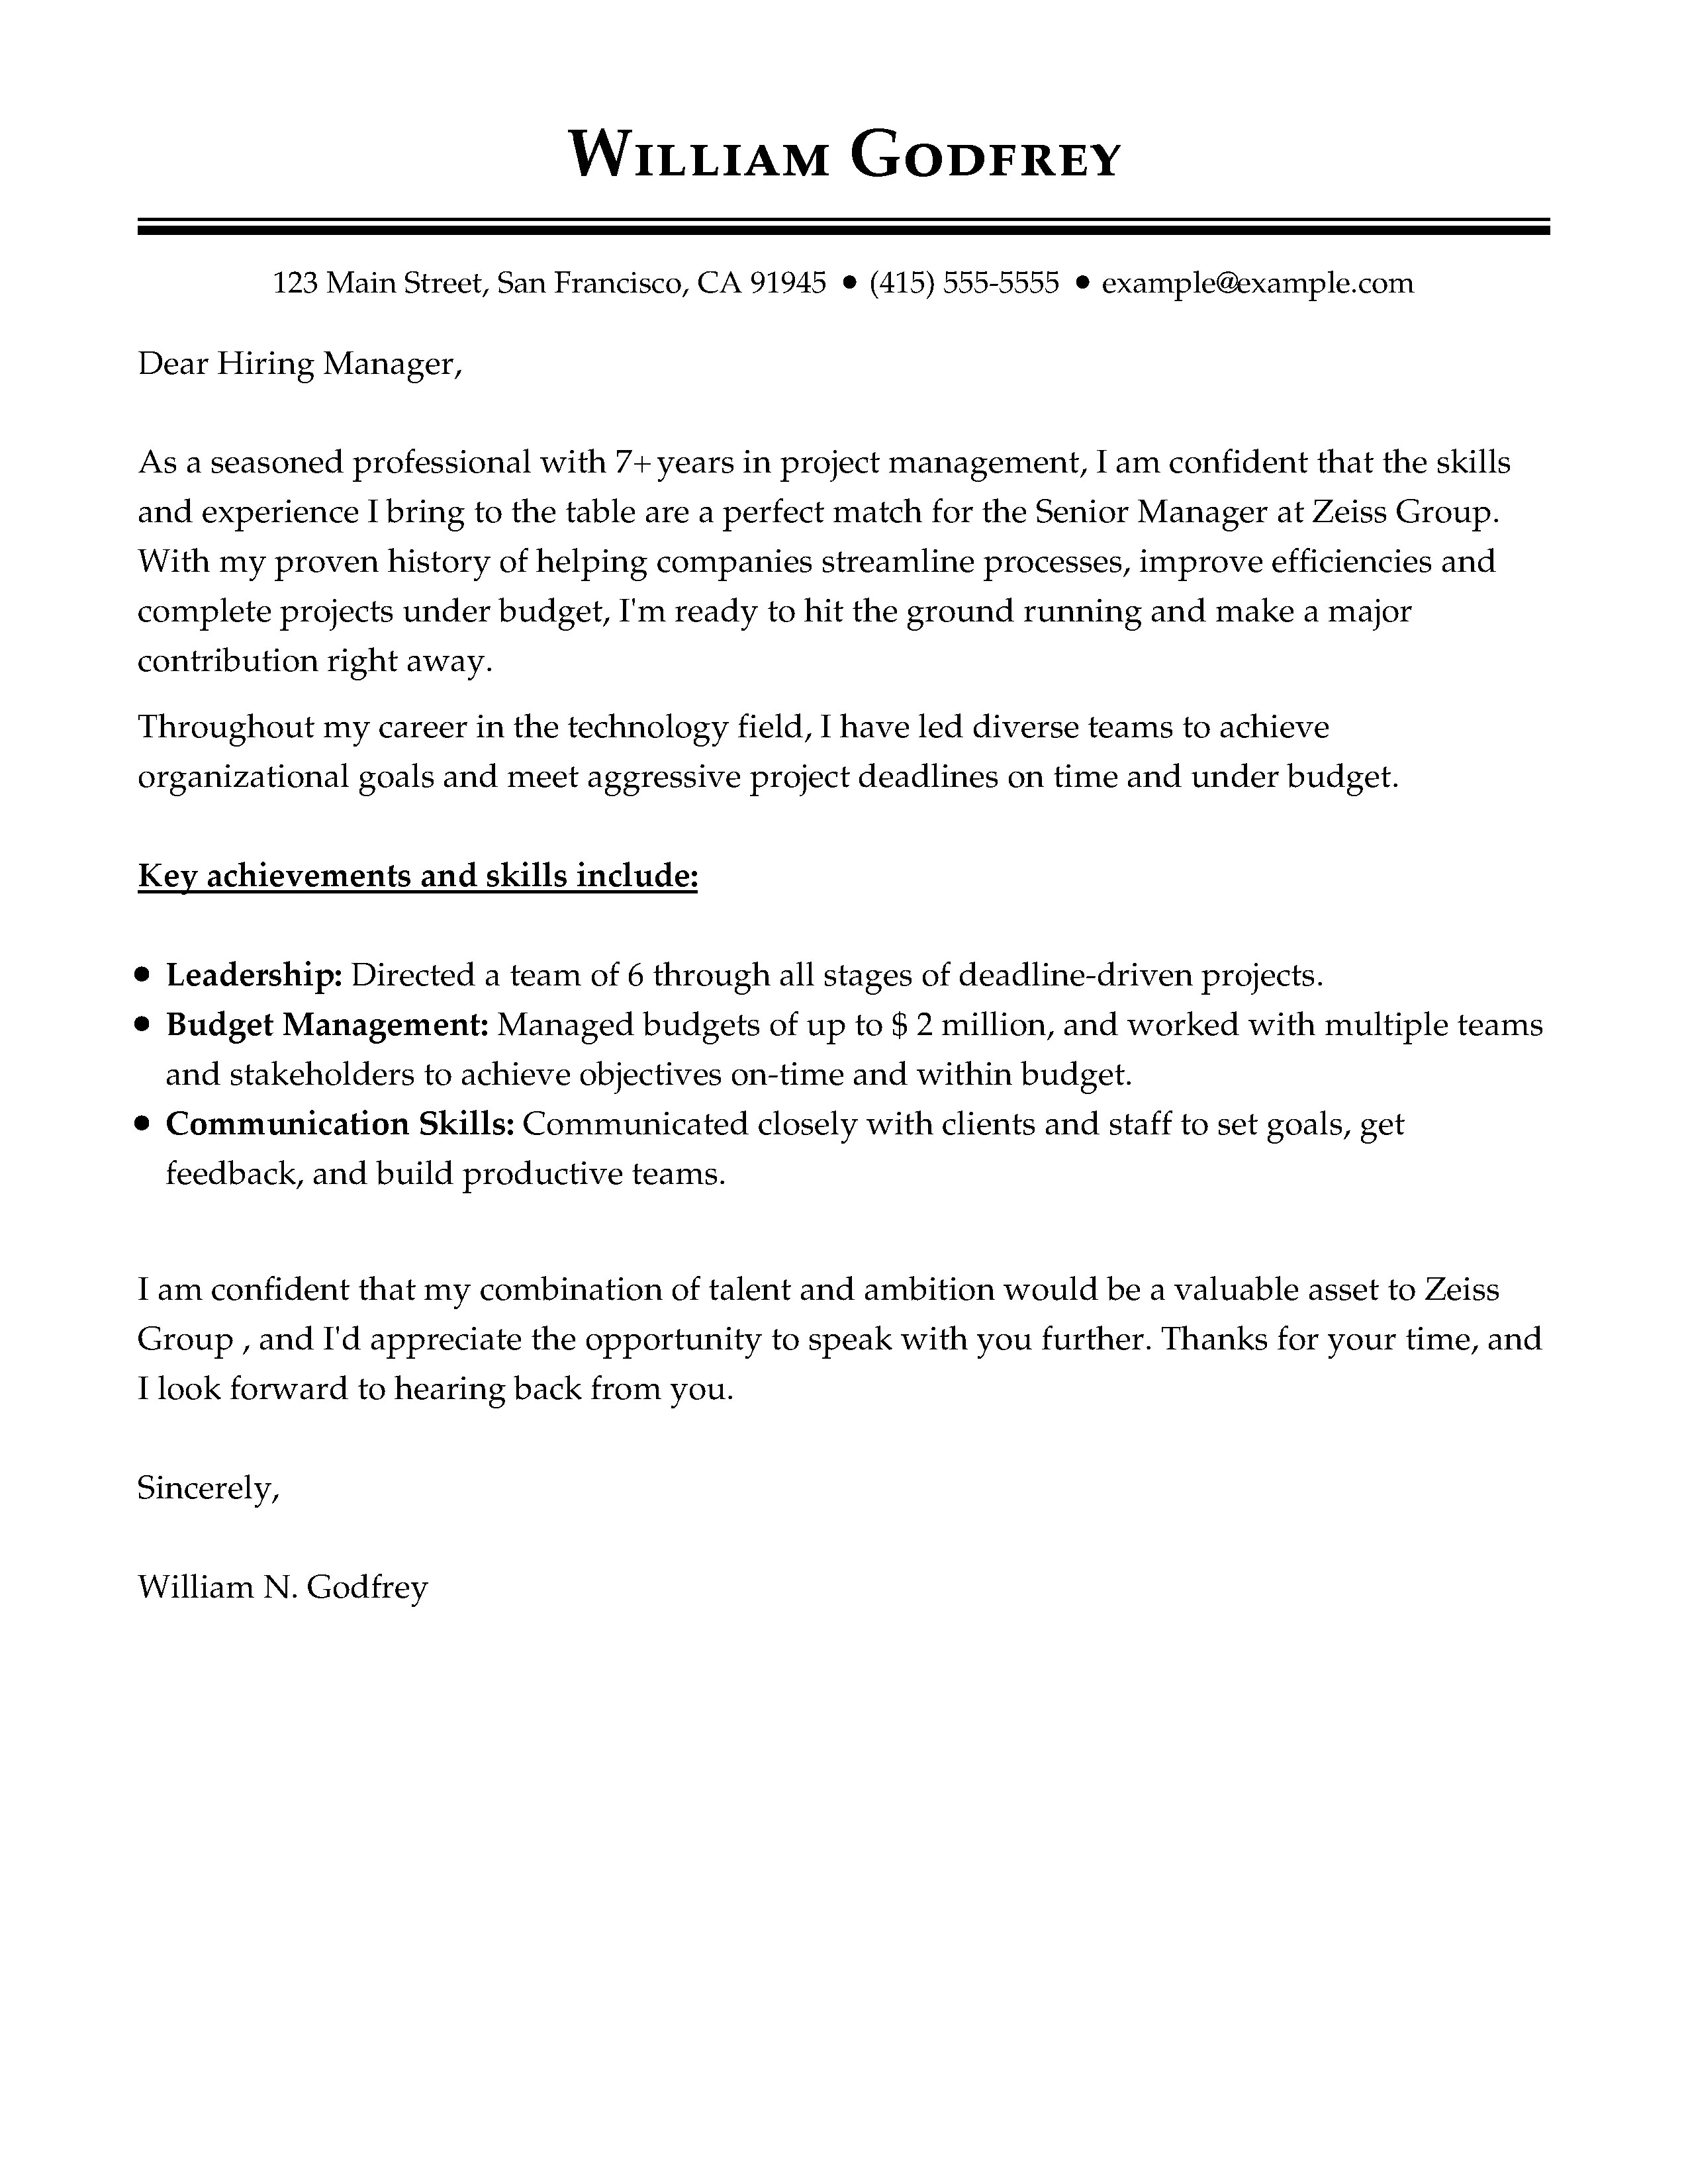 Administration Cover Letter Examples from i0.wp.com